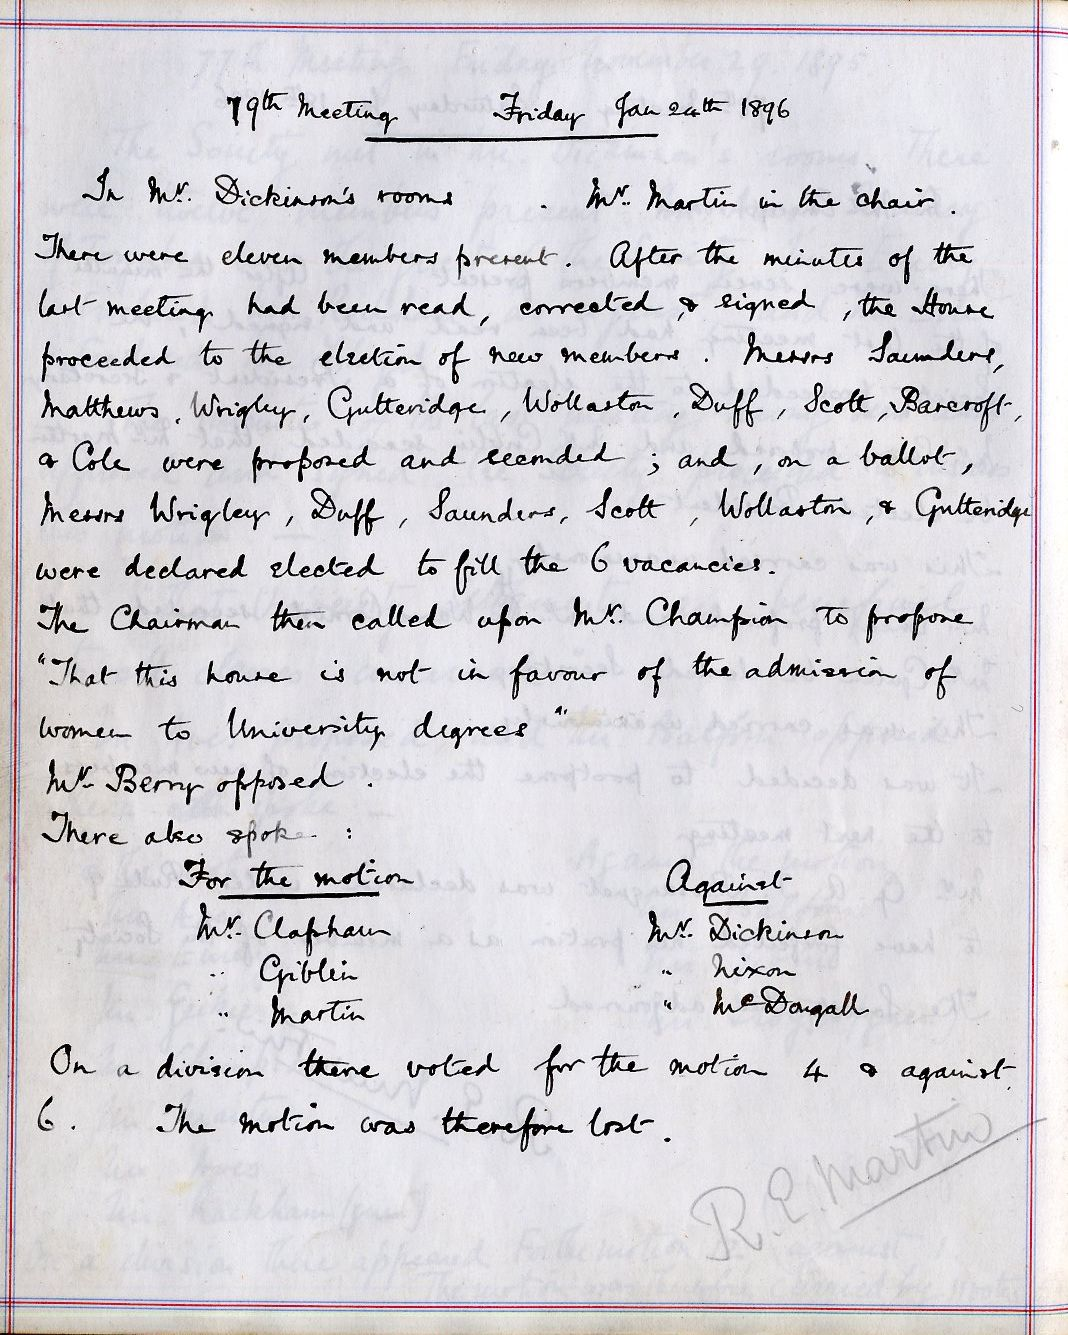 Motion of the Walpole debating society at King's, in favour of the admission of women to University degrees, in 1896. [Walpole Society minutes]